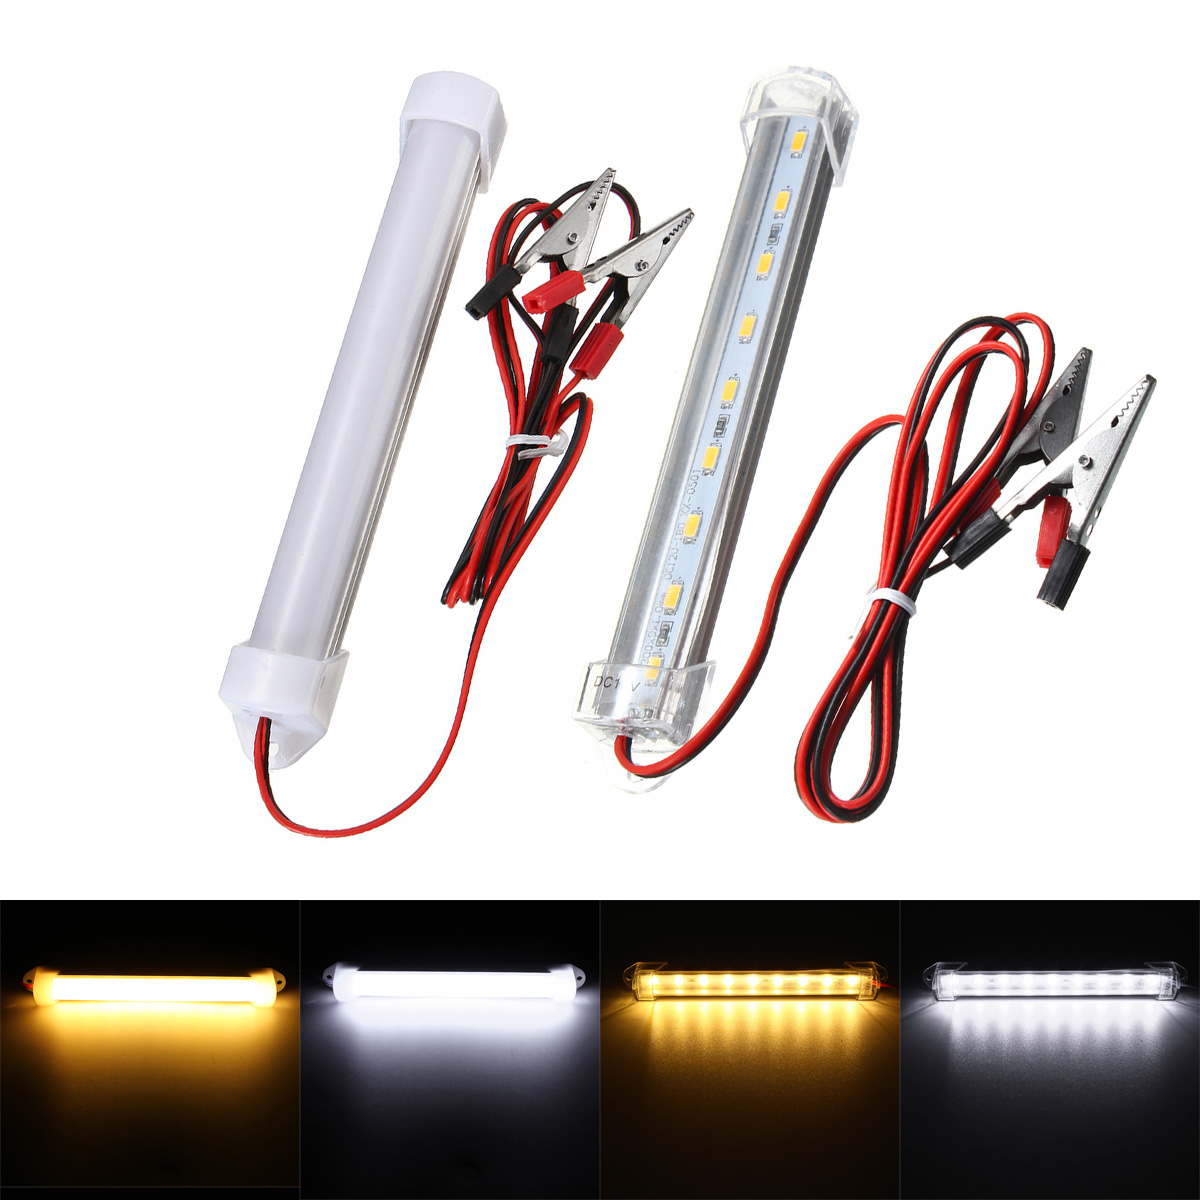 DC12V LED Car Interior White Strip Lights Bar Lamp Car Inspection Light For Van Caravan Car Signal Lamp Pure/Warm White